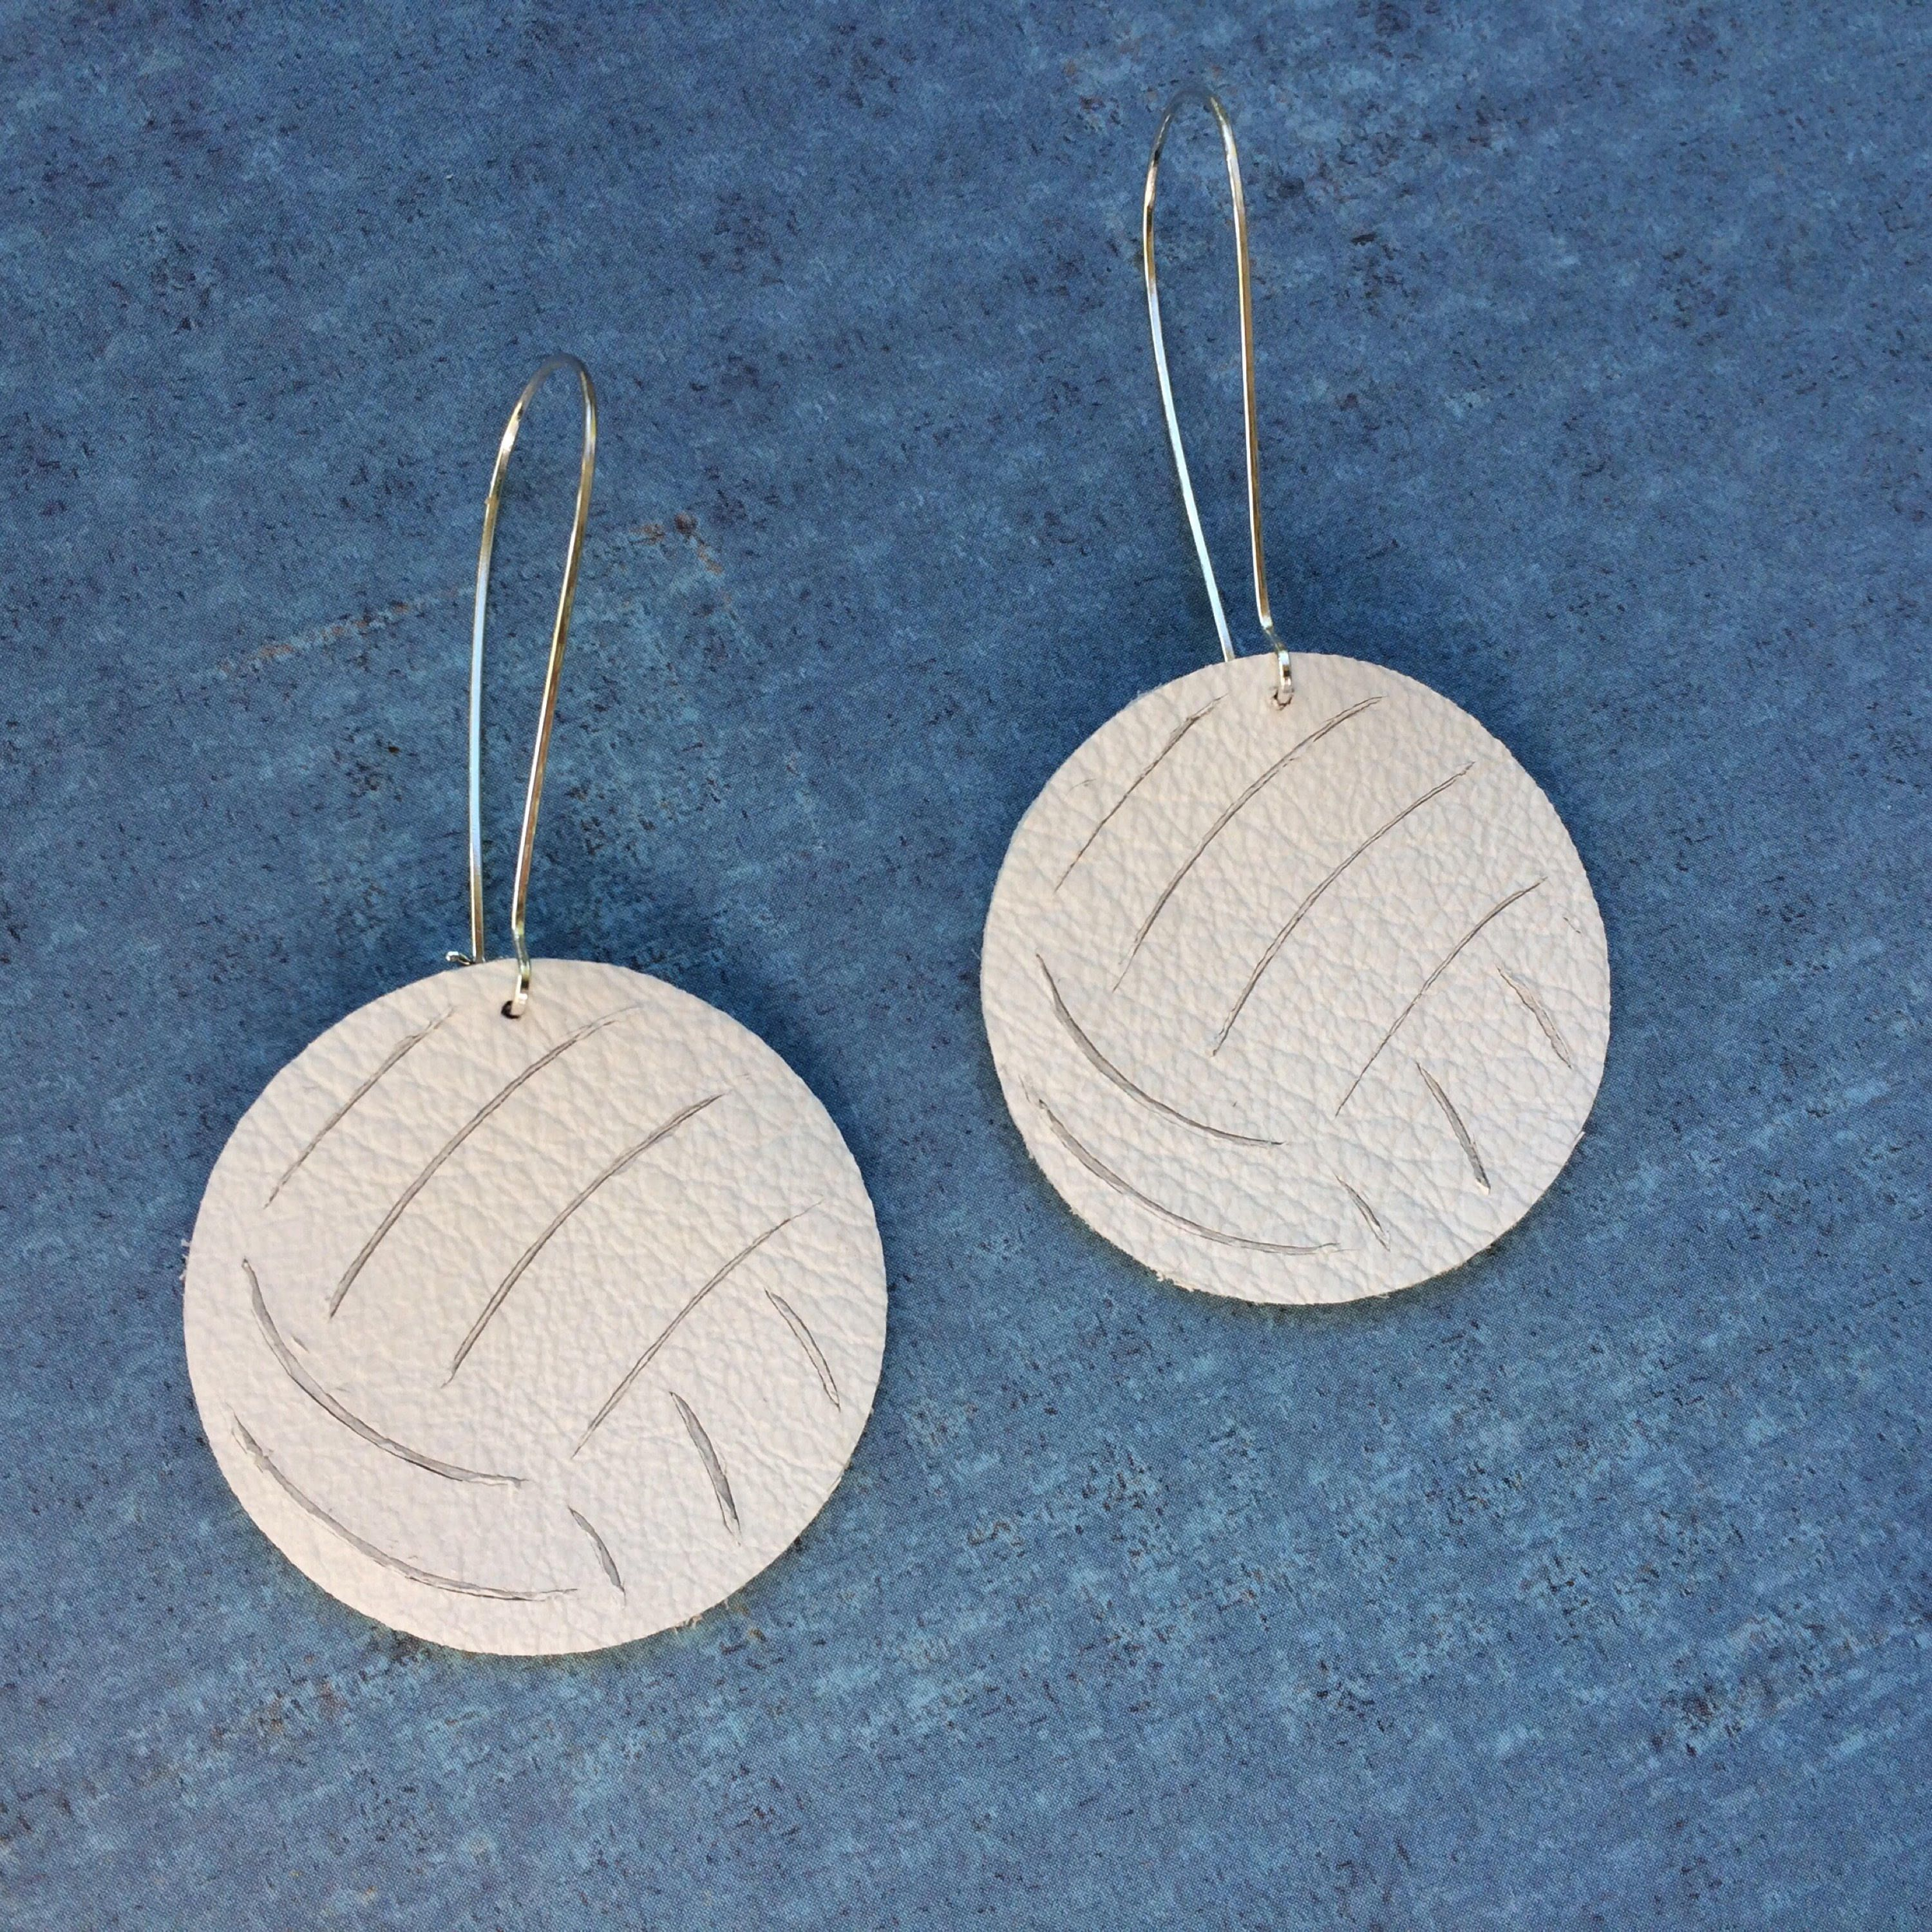 Volleyball Earrings Volleyball Leather Earrings Sports Earrings By Shopsimplydistressed On Etsy Sport Earring Leather Earrings Silhouette Jewelry